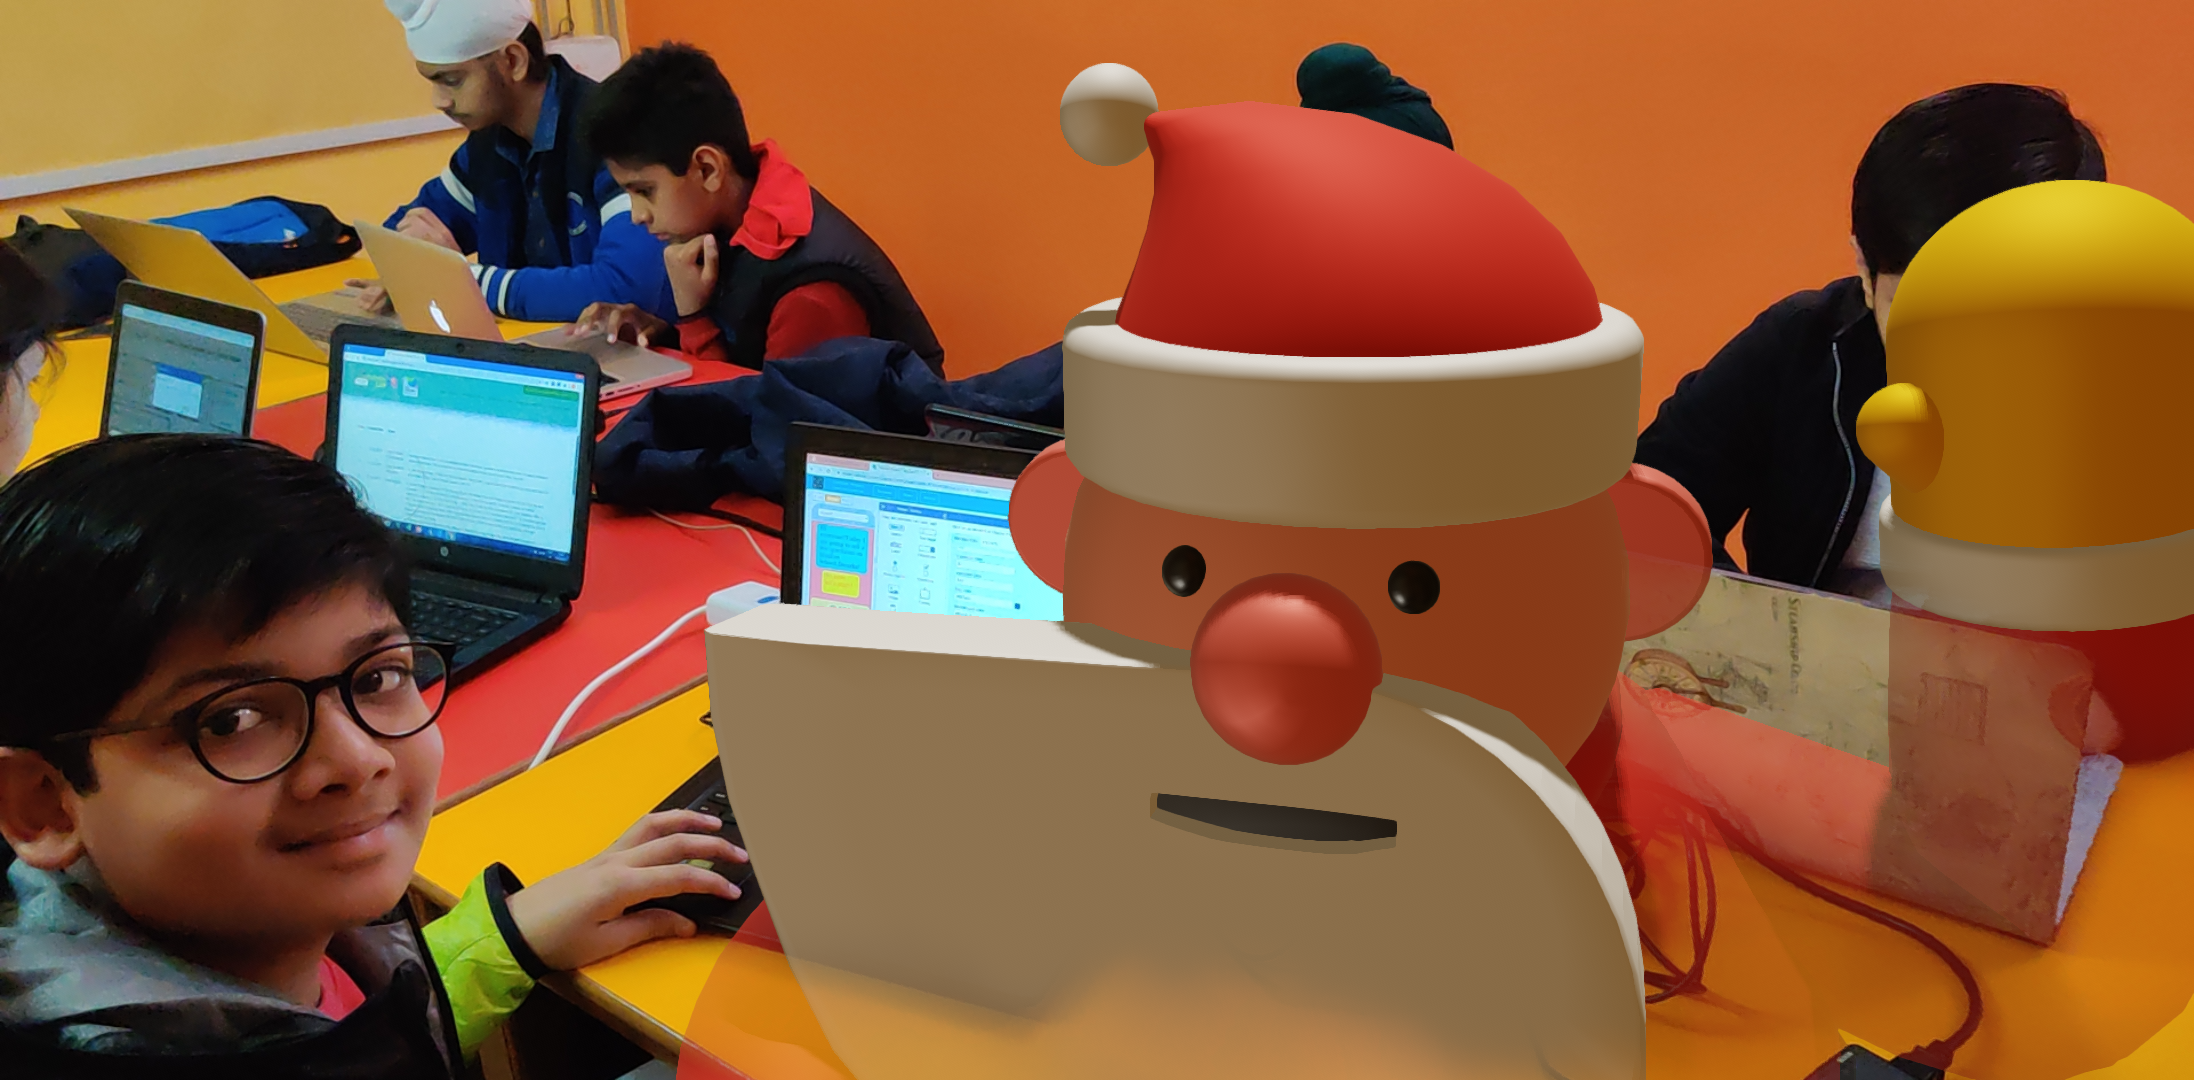 One Happy CodeTiger with Santa